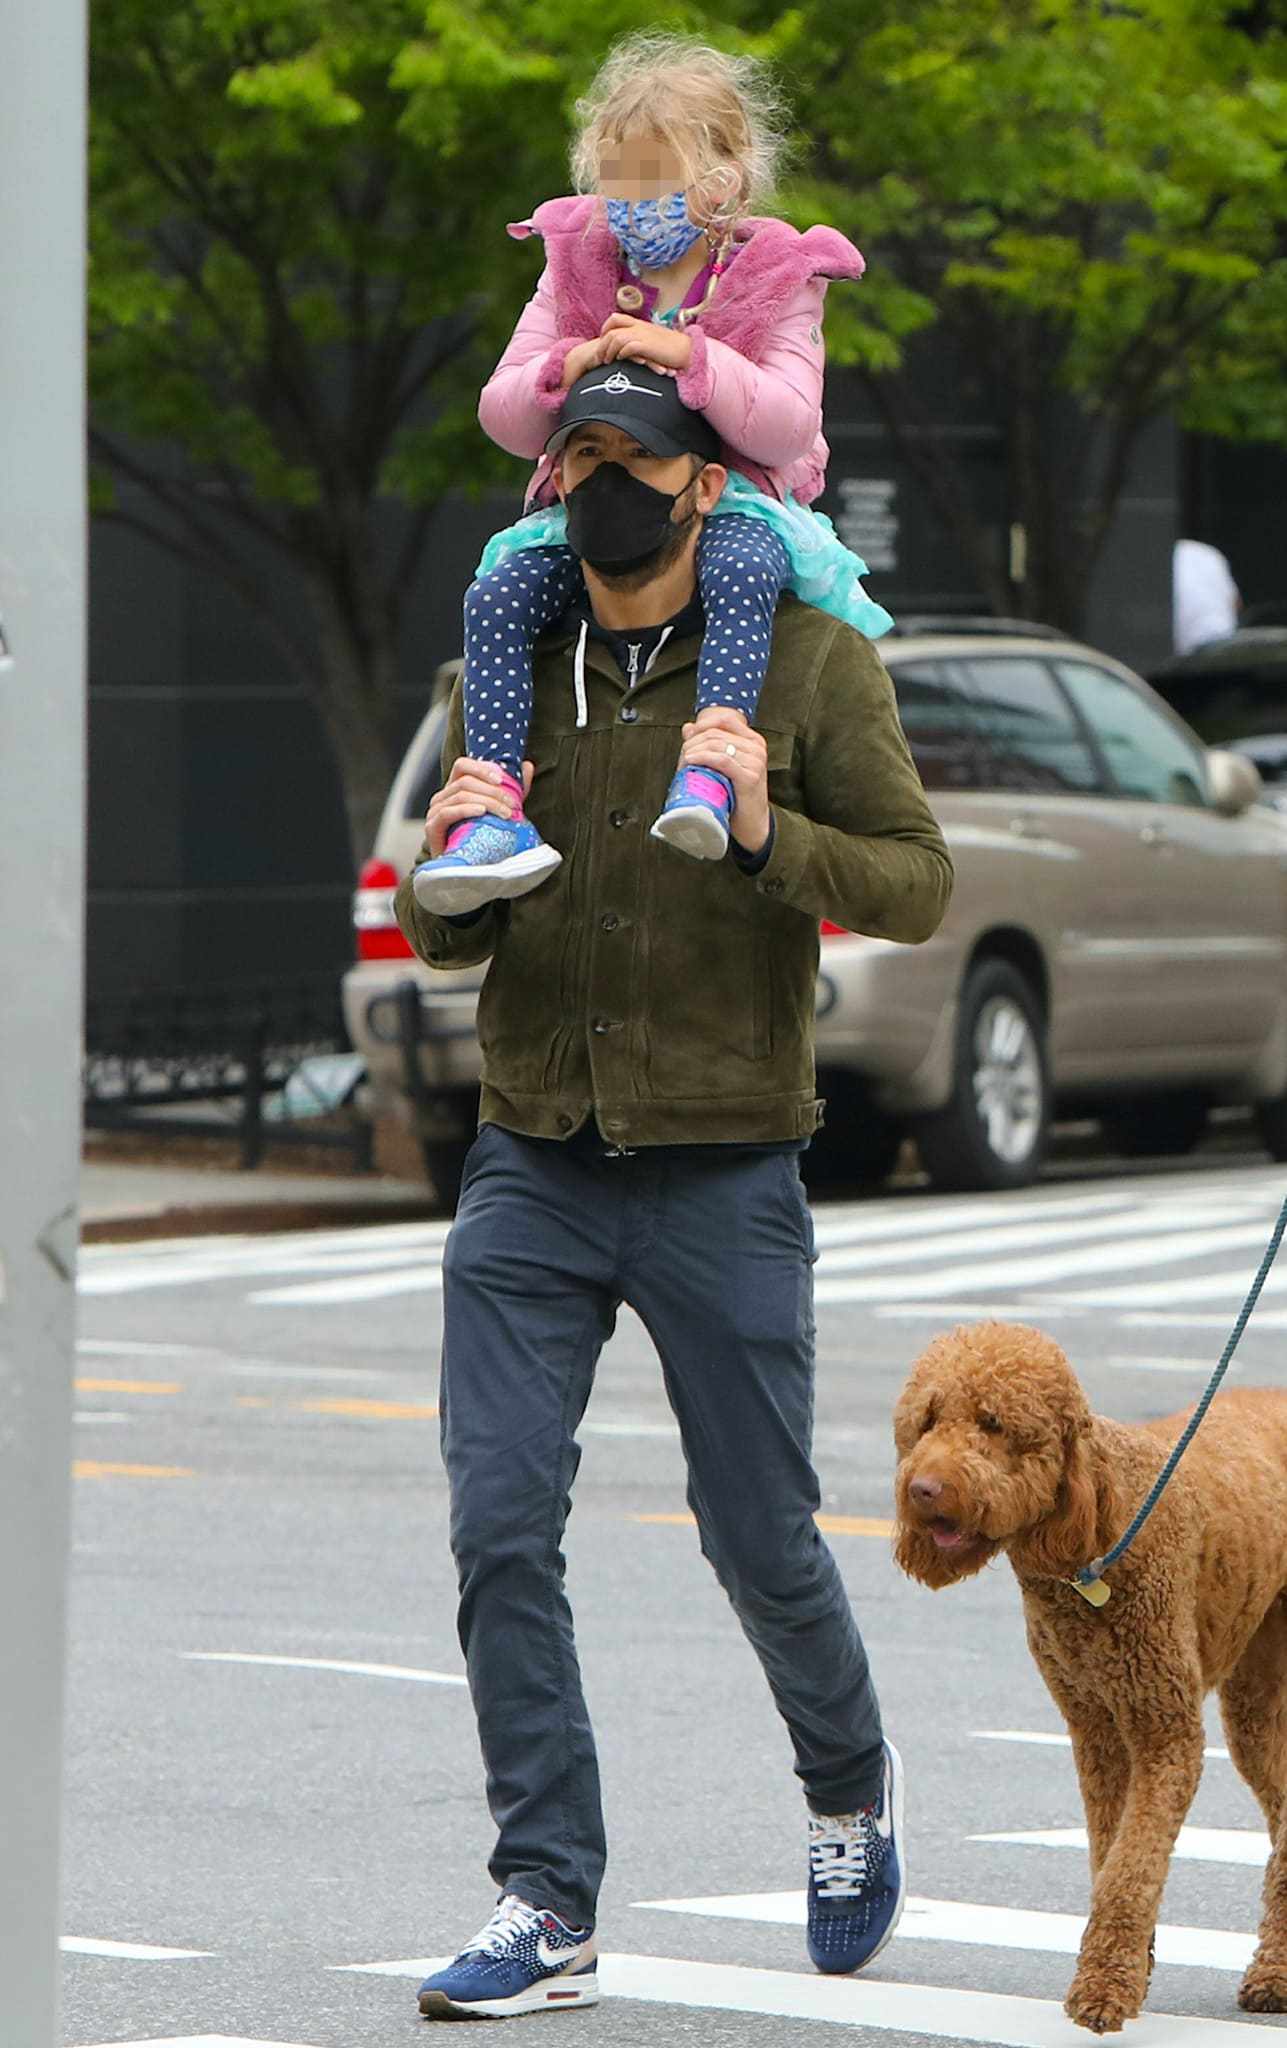 Ryan Reynolds carries his daughter on his shoulders in green jacket, navy pants, and Nike shoes